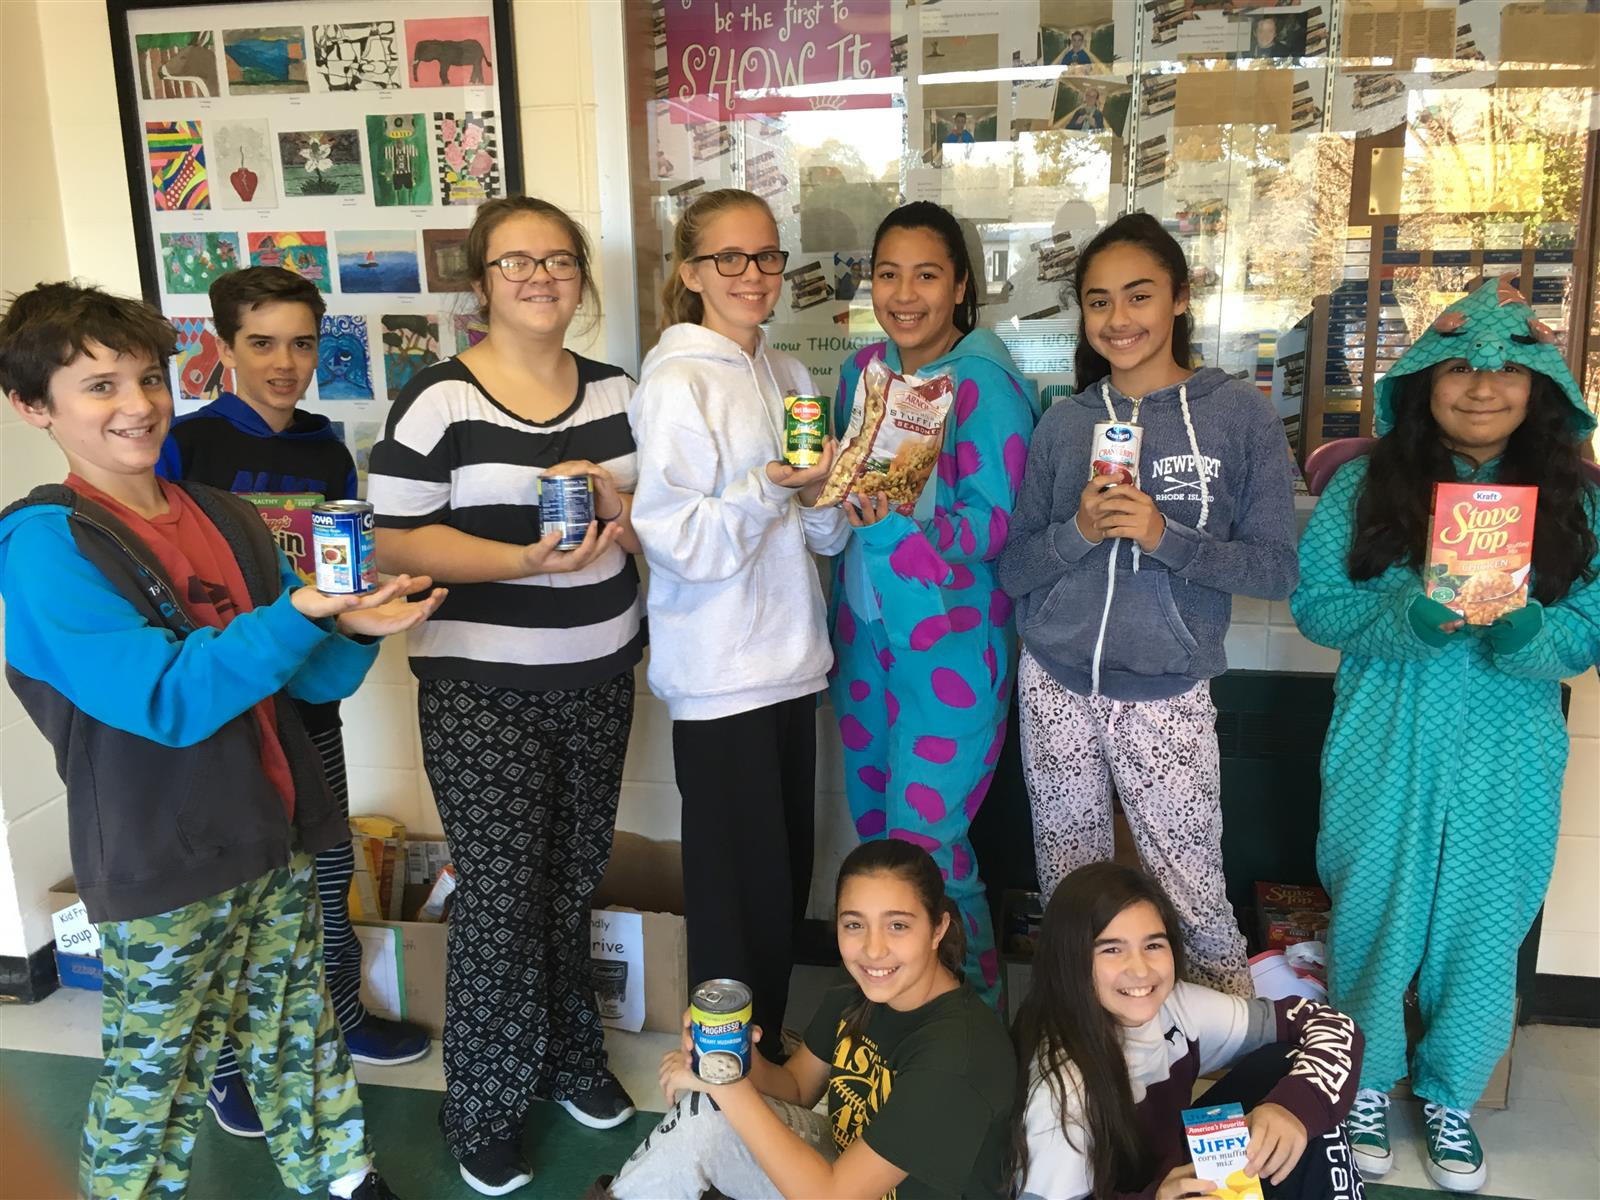 Junior High Student Council Holds 'Pajama Day' Fundraiser for Springs Food Pantry